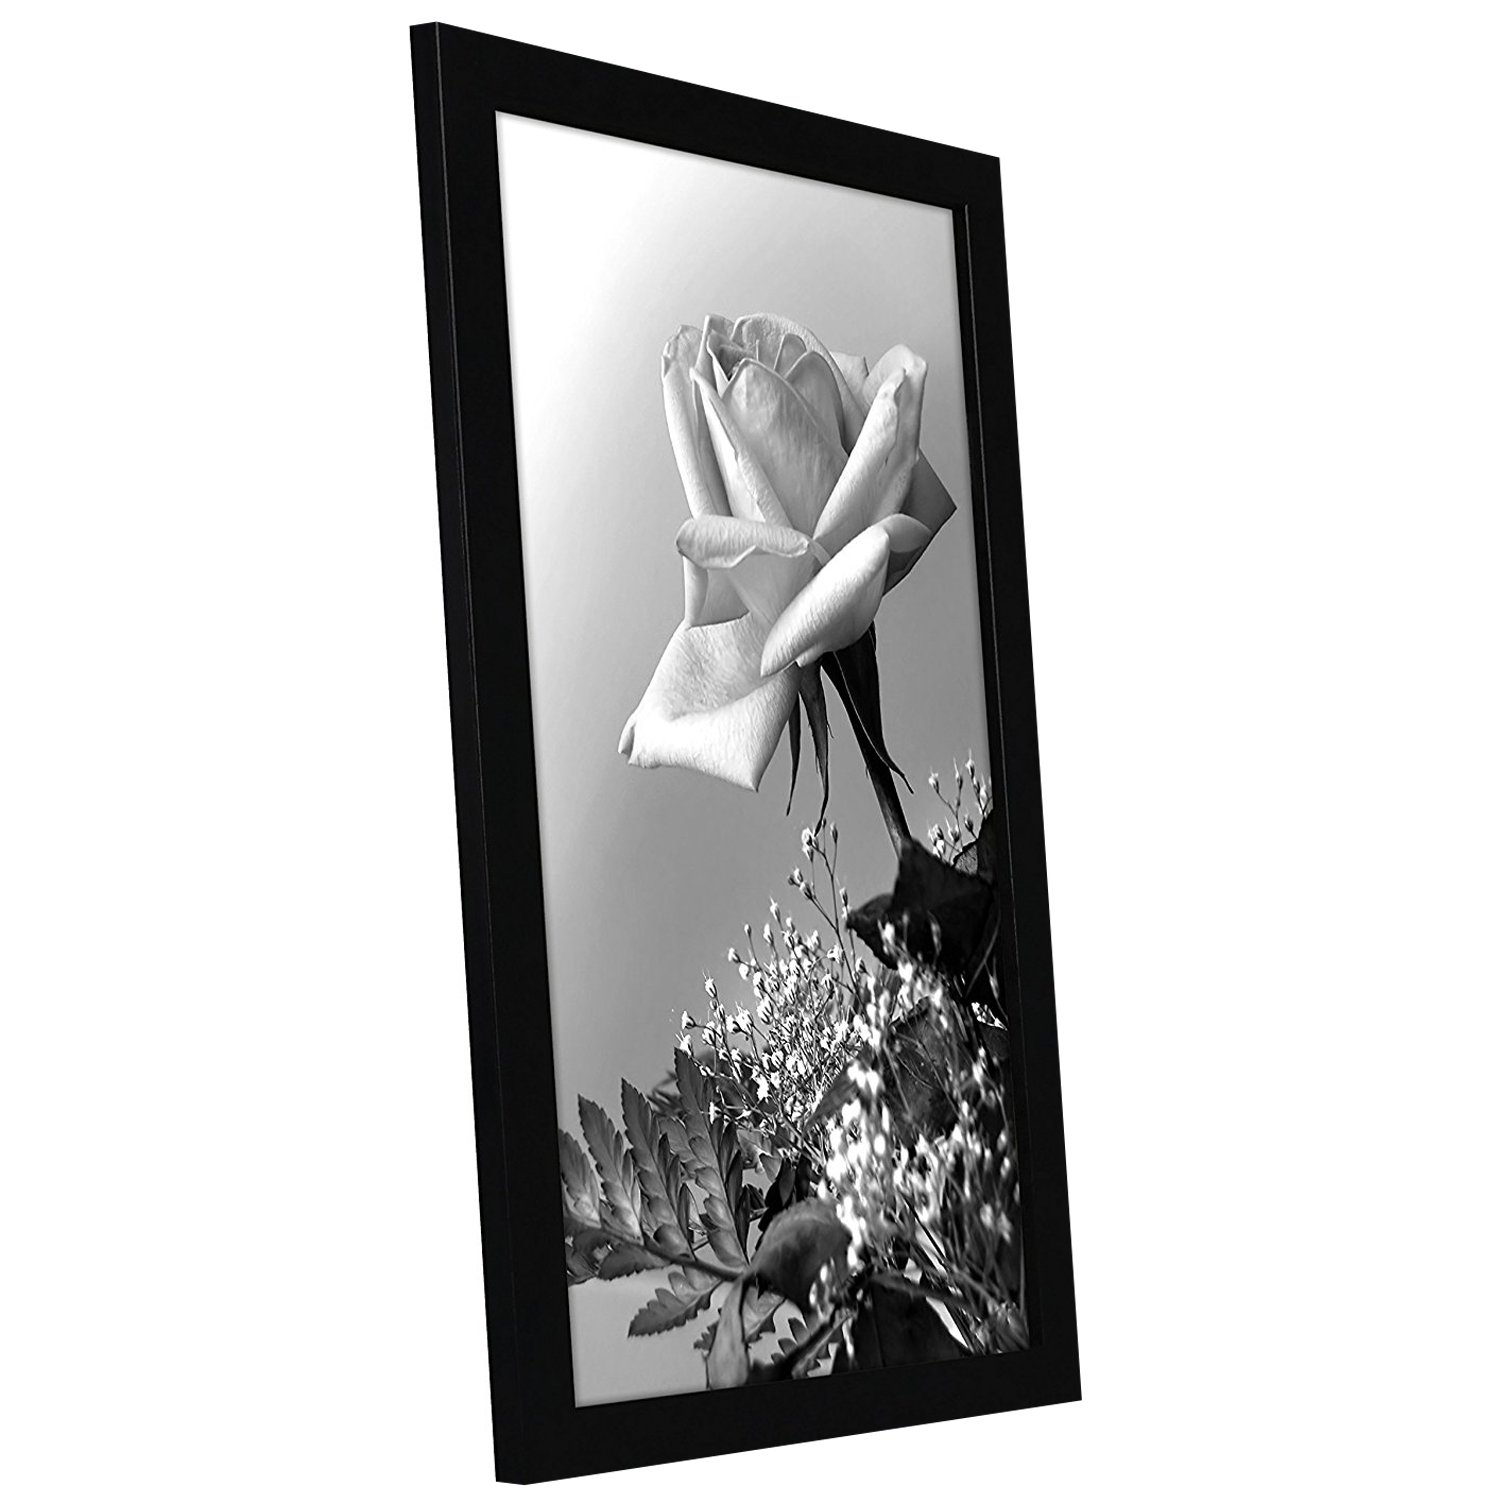 12x18 black poster frame with plexiglass front by